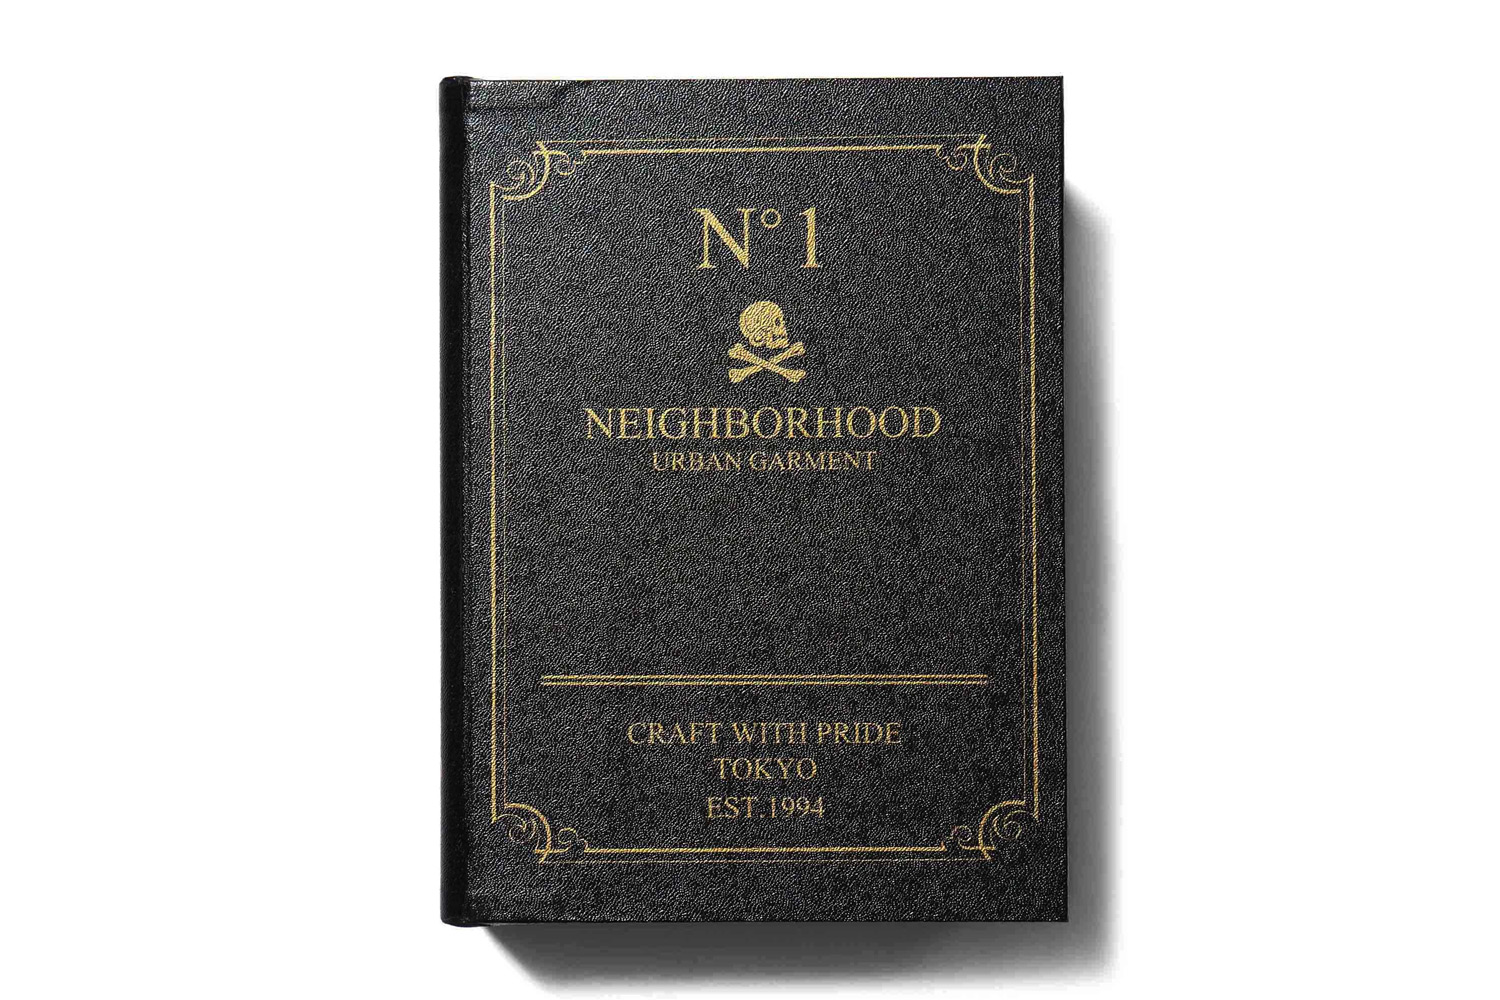 NEIGHBORHOOD Re-Releases the No.1 P-Book Box